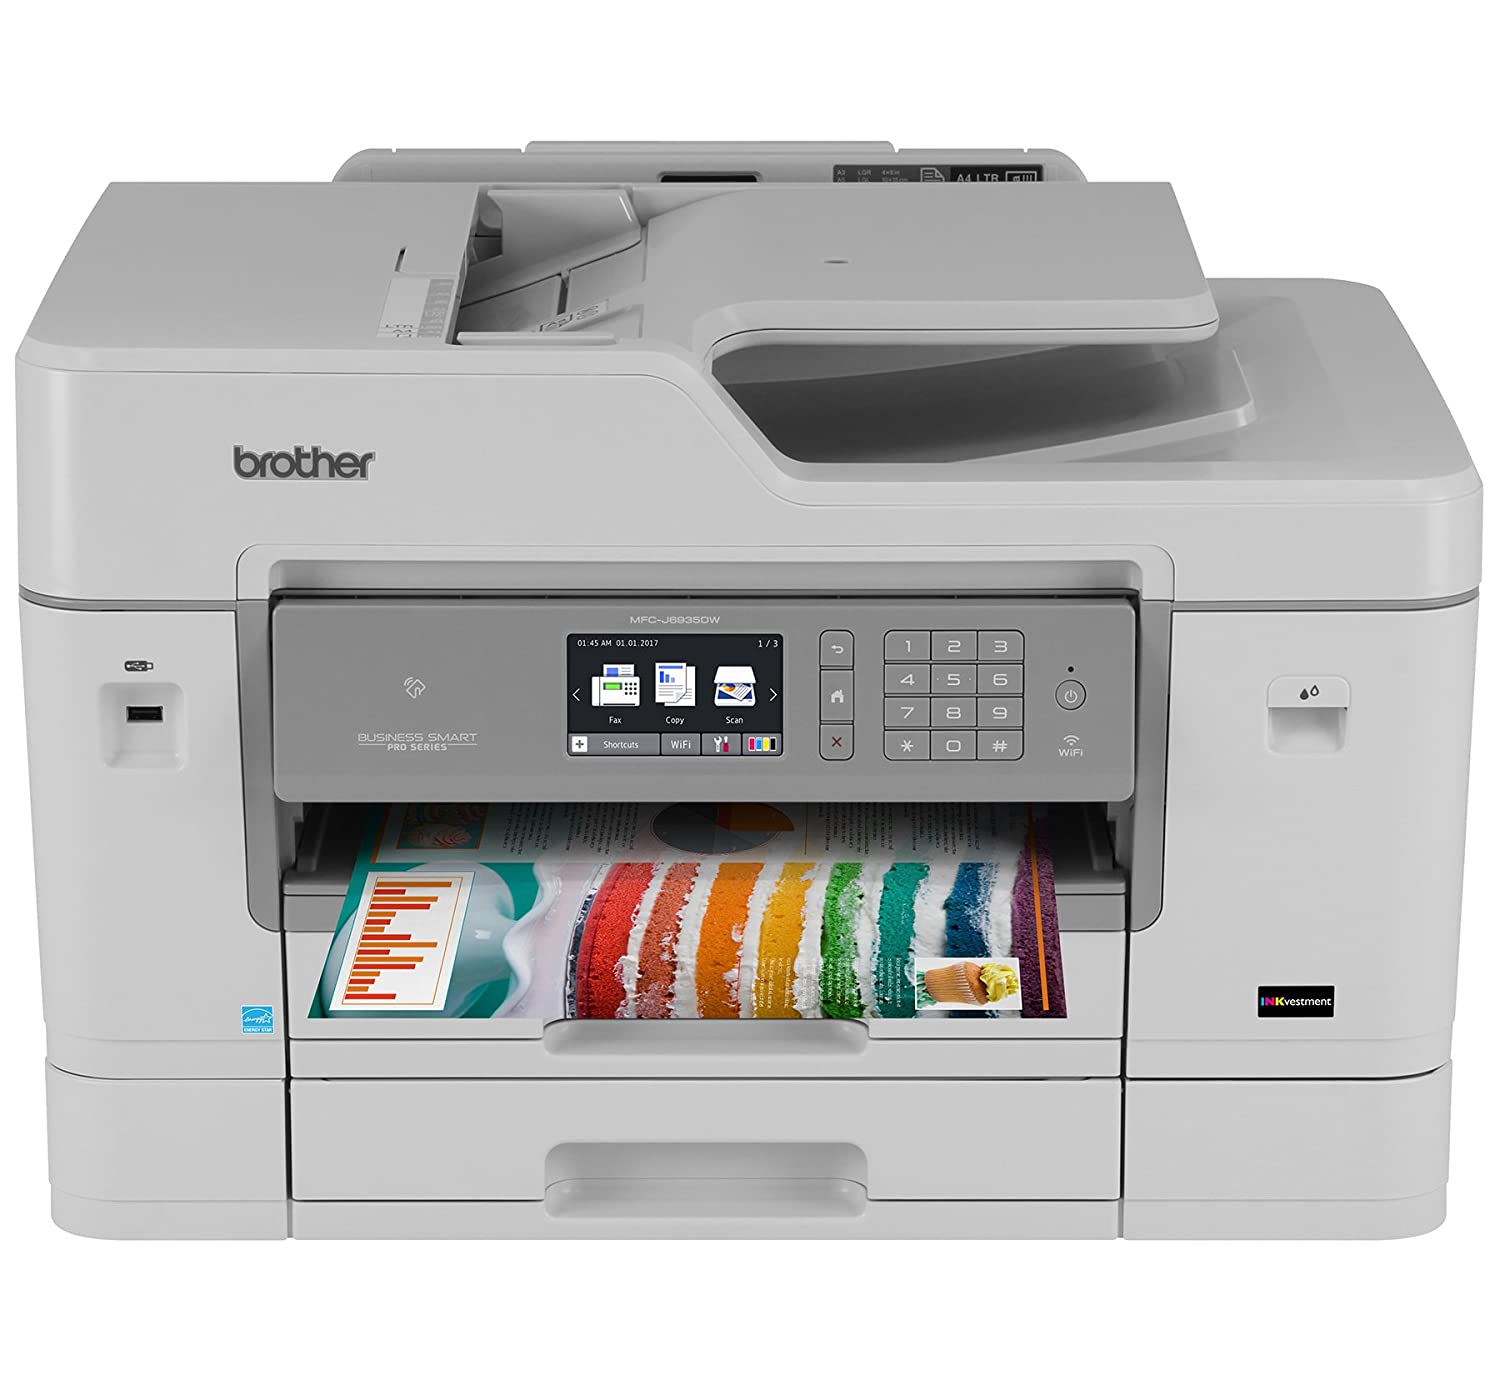 Brother MFC-J6935DW Inkjet All-in-One Color Printer, Wireless Connectivity, Automatic Duplex Printing,  Dash Replenishment Enabled